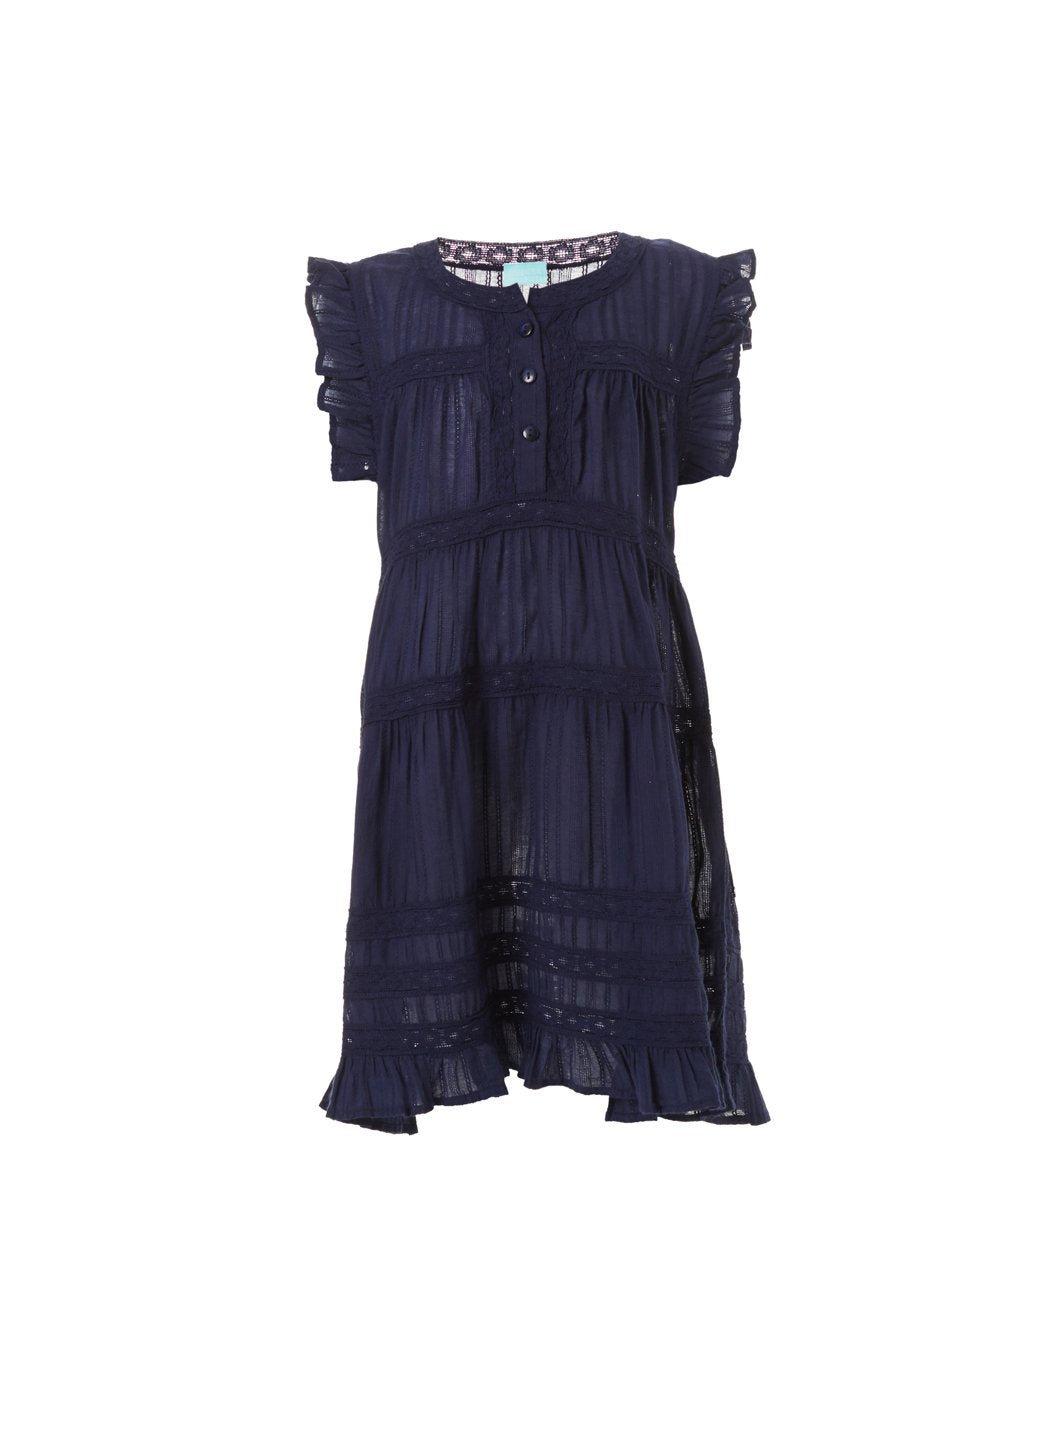 baby rebekah navy smock dress 2019